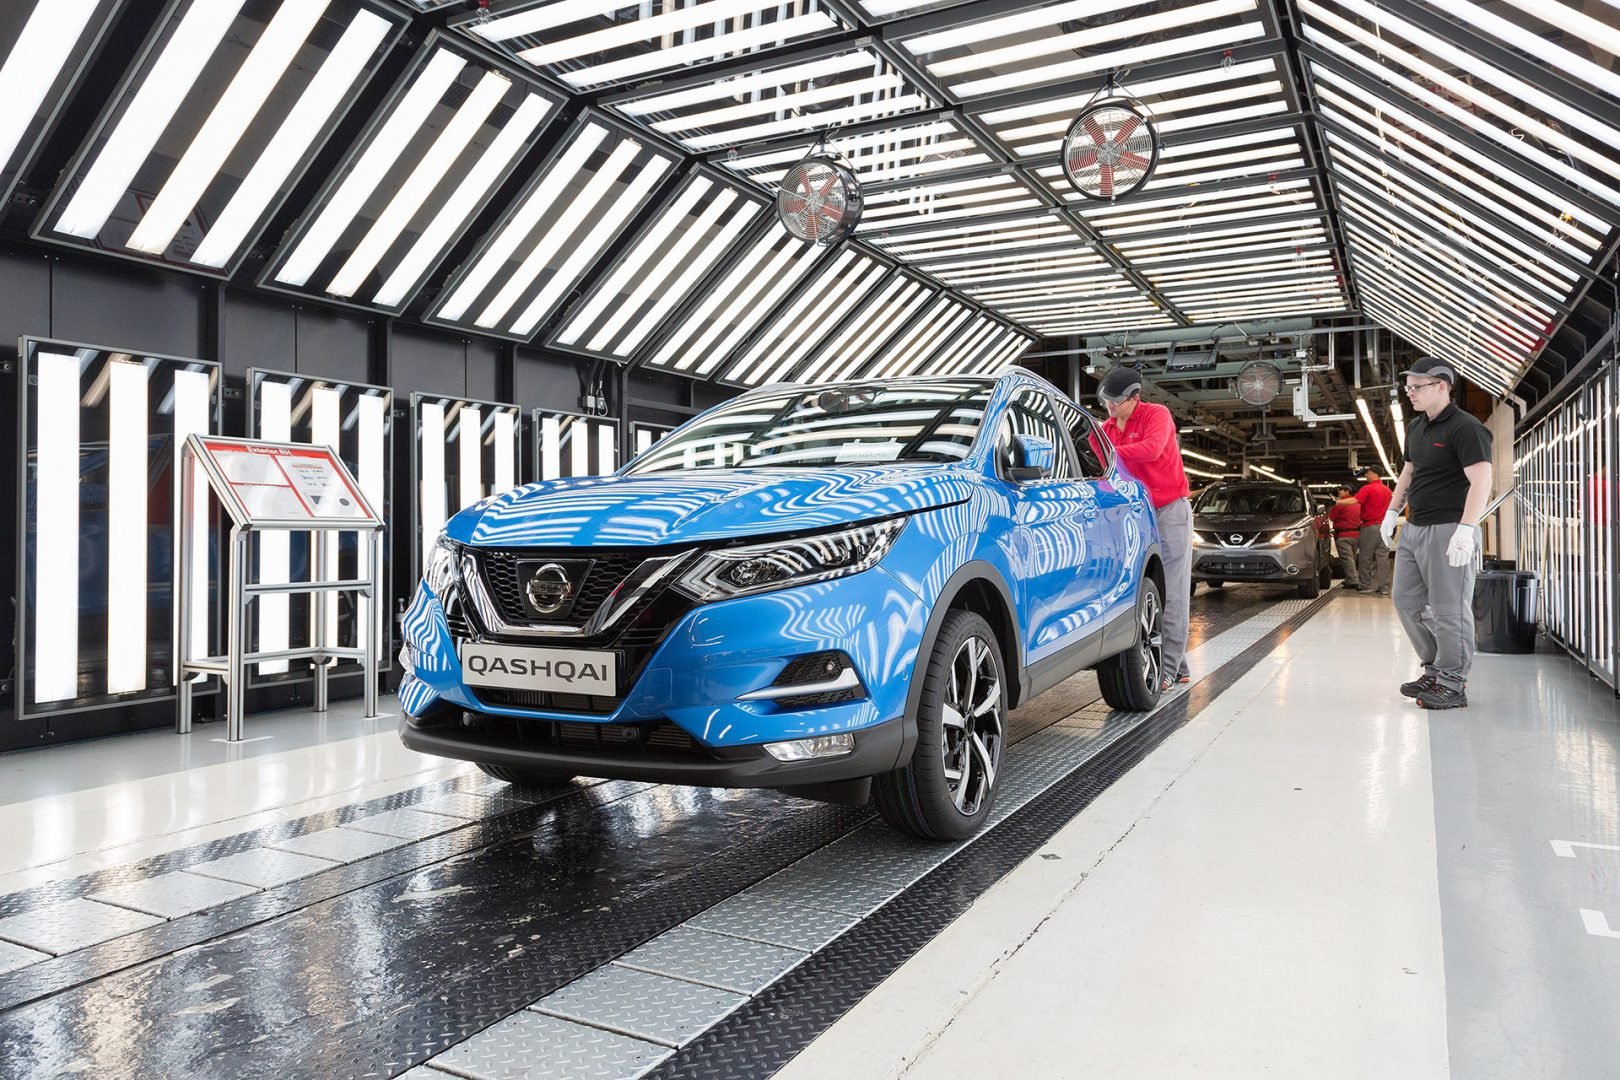 Nissan production line, Sunderland